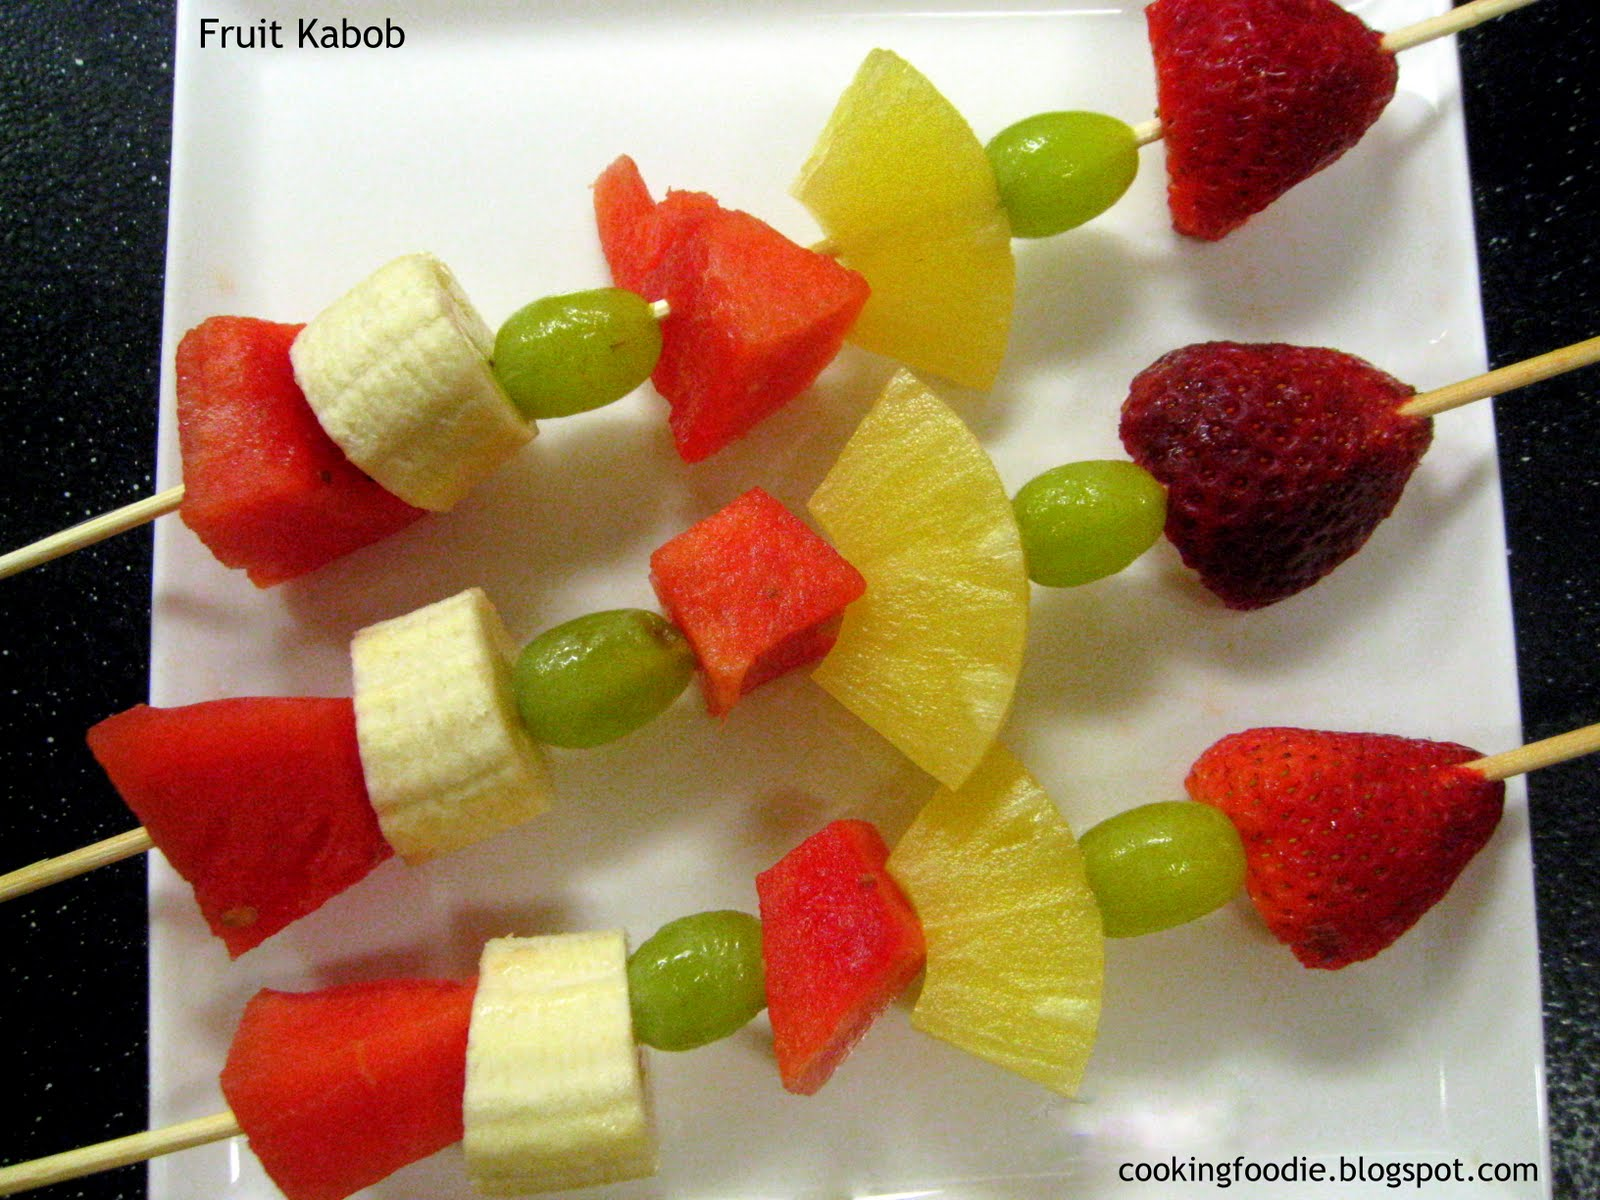 Fruit Kabobs at Pool Party